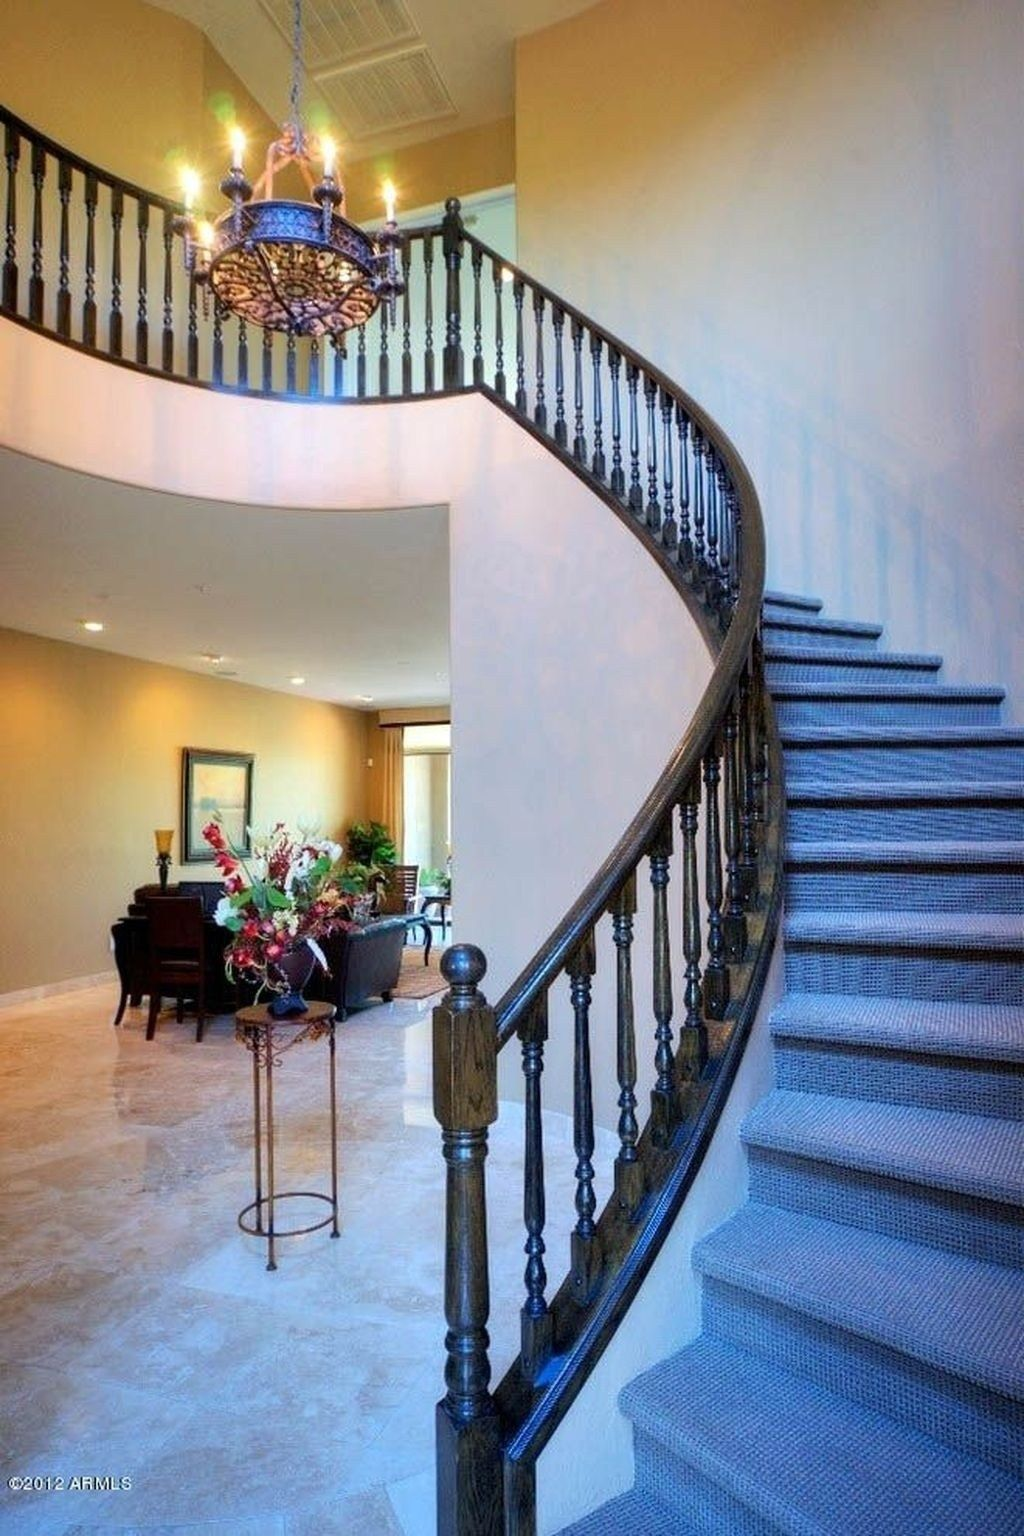 Best Cool Staircase Ideas For Home 30 Home Remodelling Cool 400 x 300